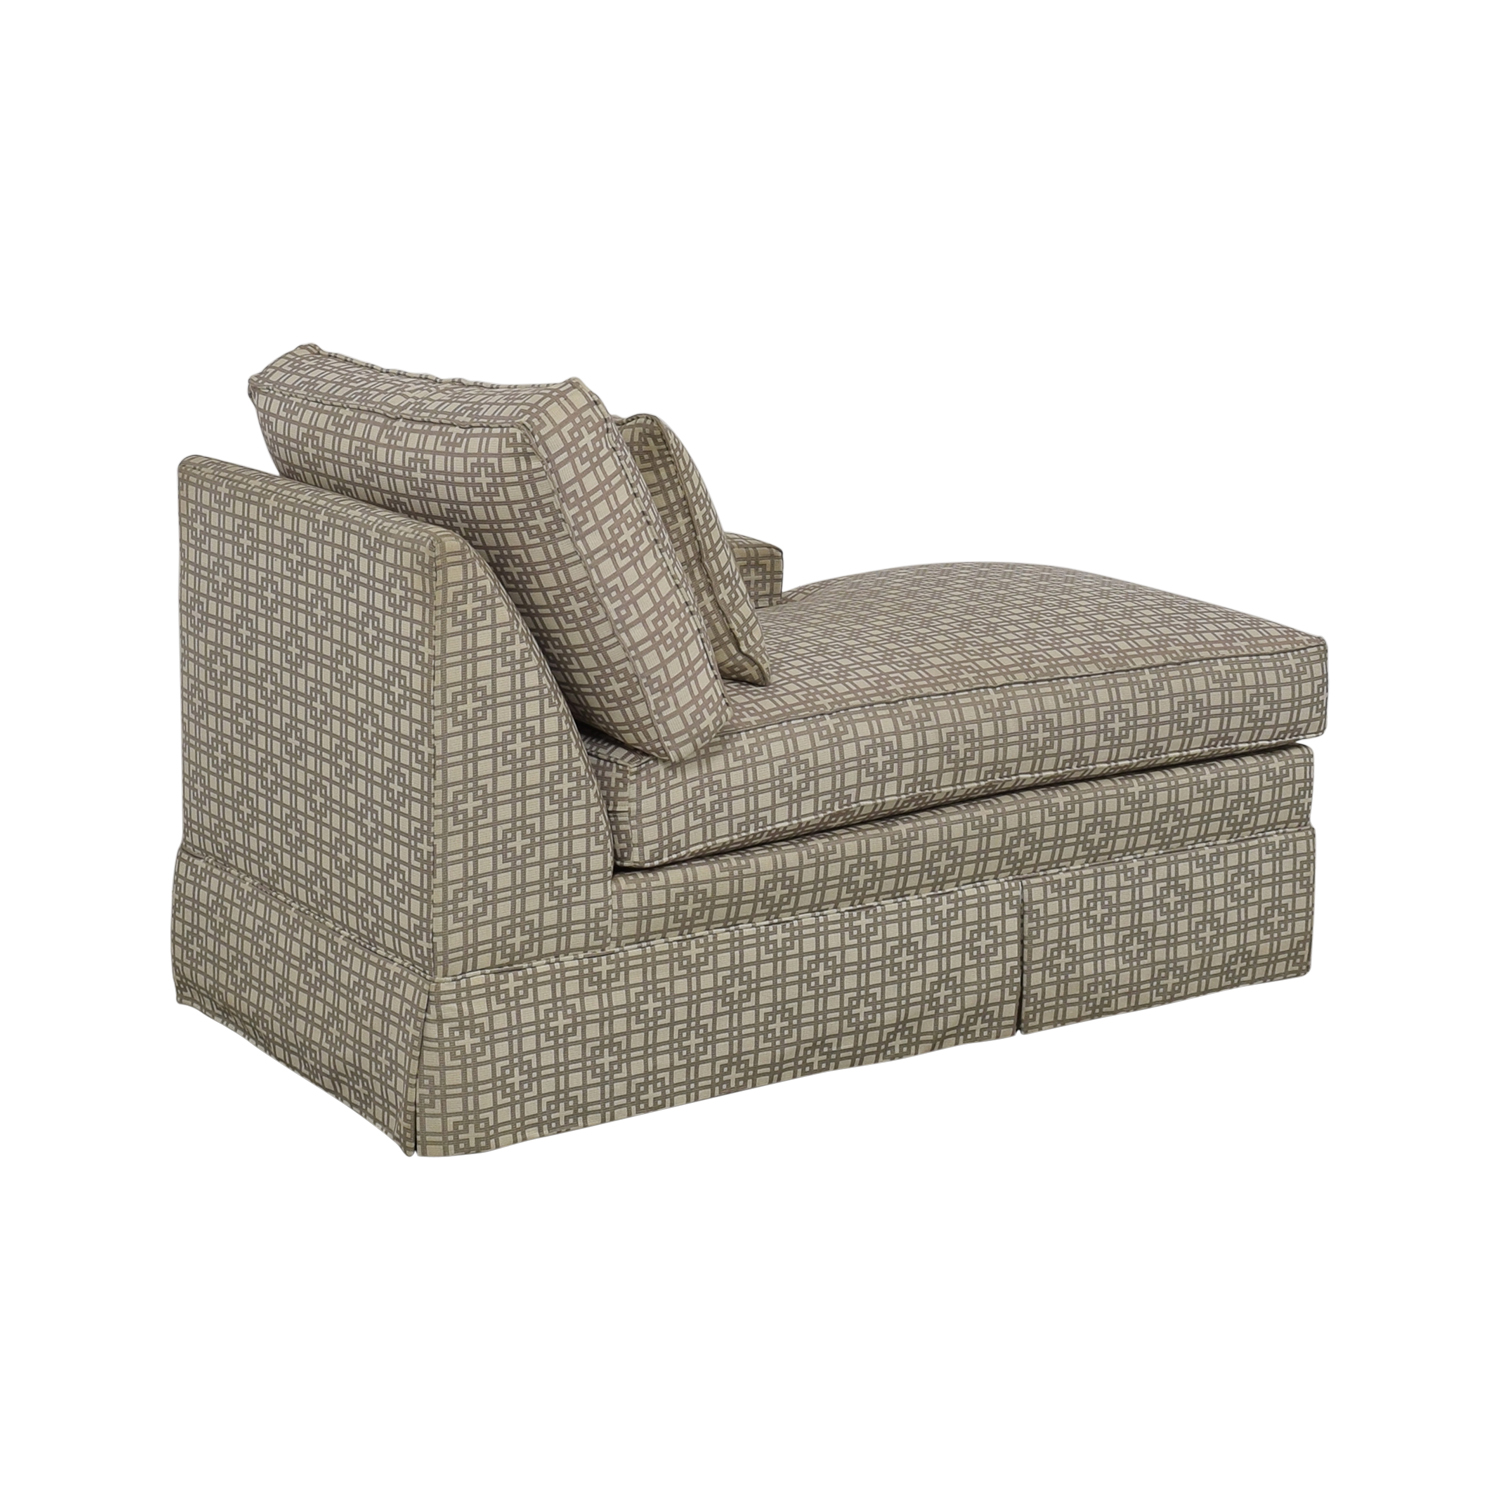 Ethan Allen Ethan Allen Lounge Chaise coupon